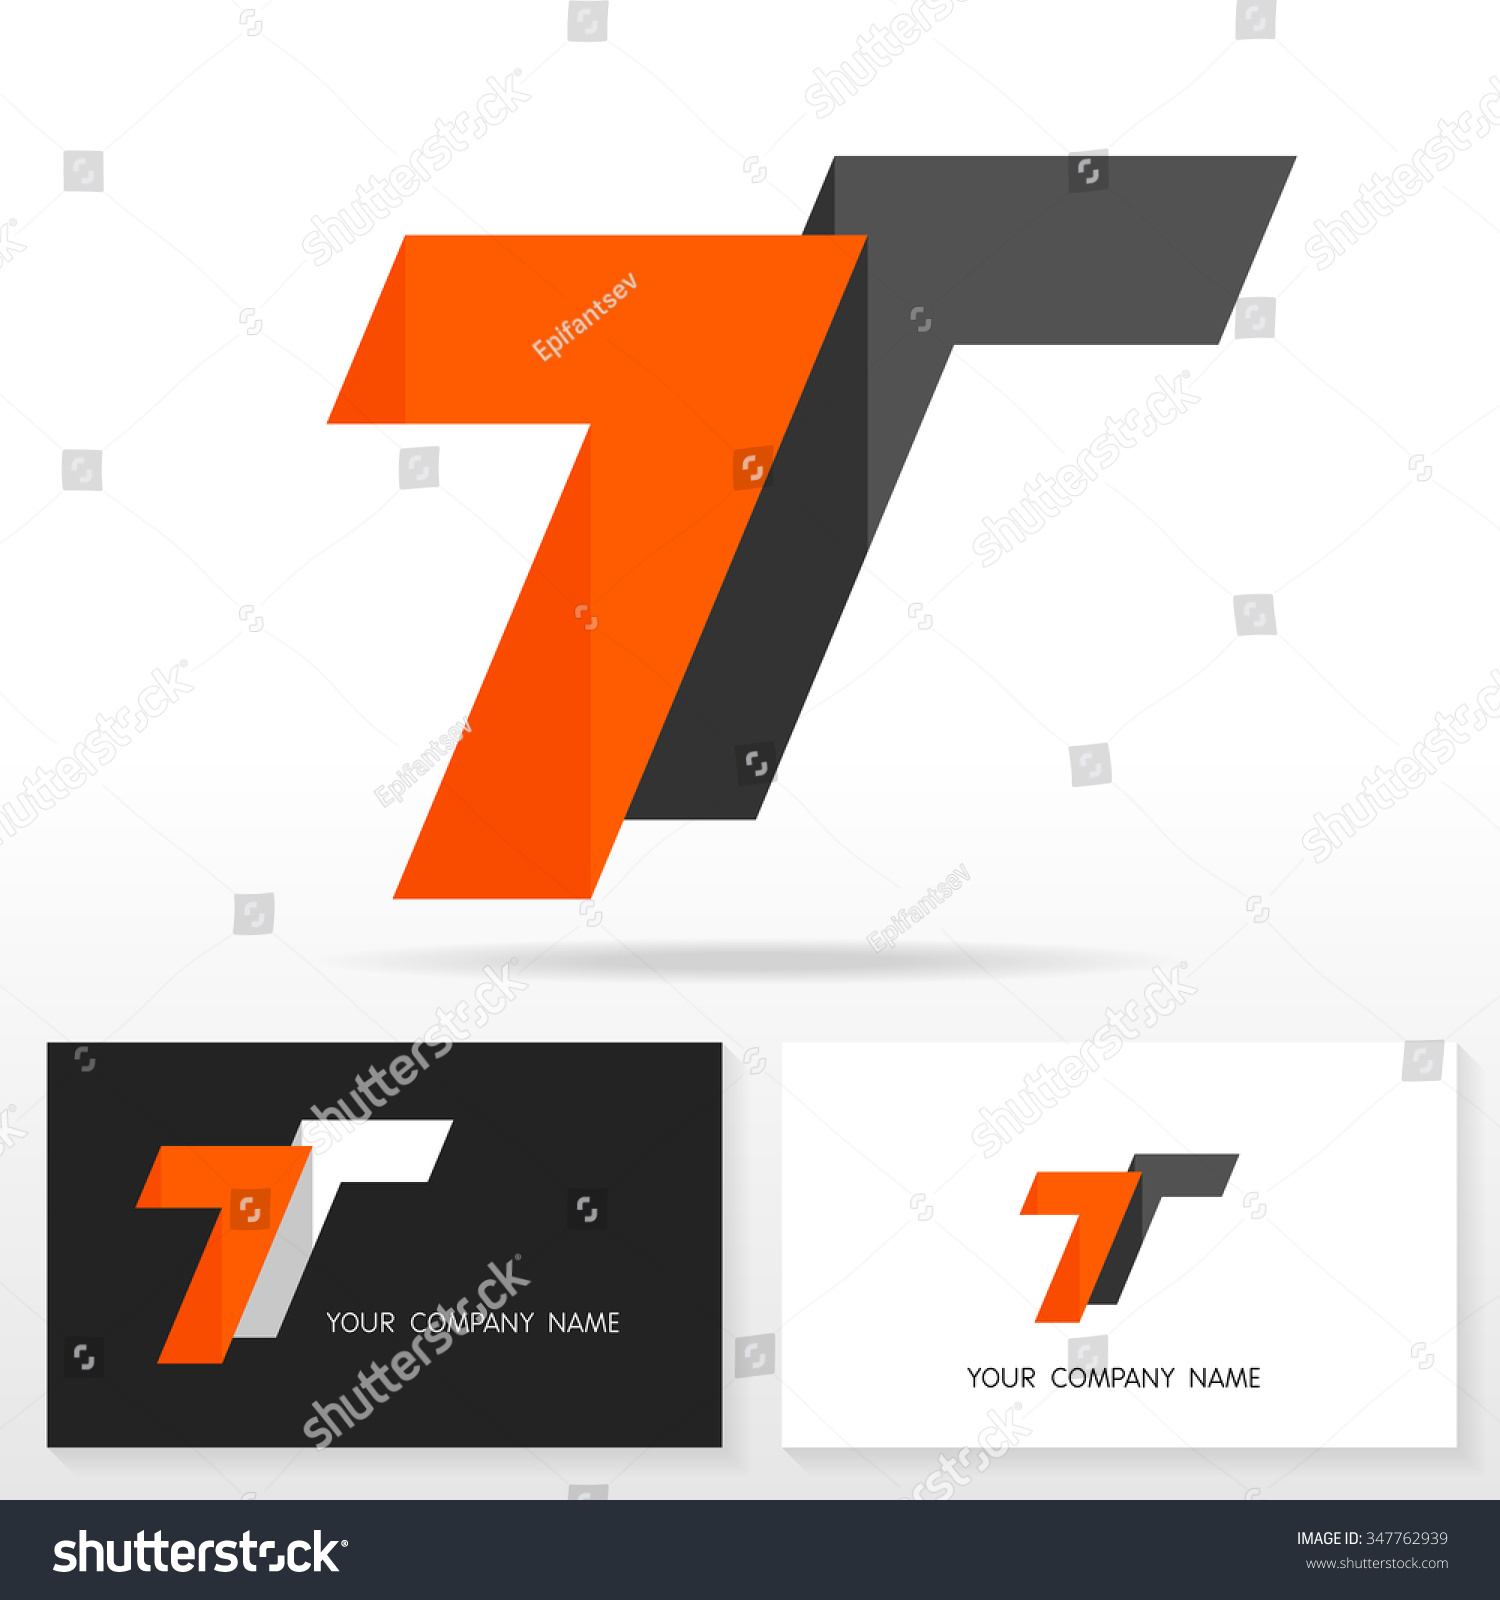 Letter t logo design vector sign stock vector 347762939 for Designing company